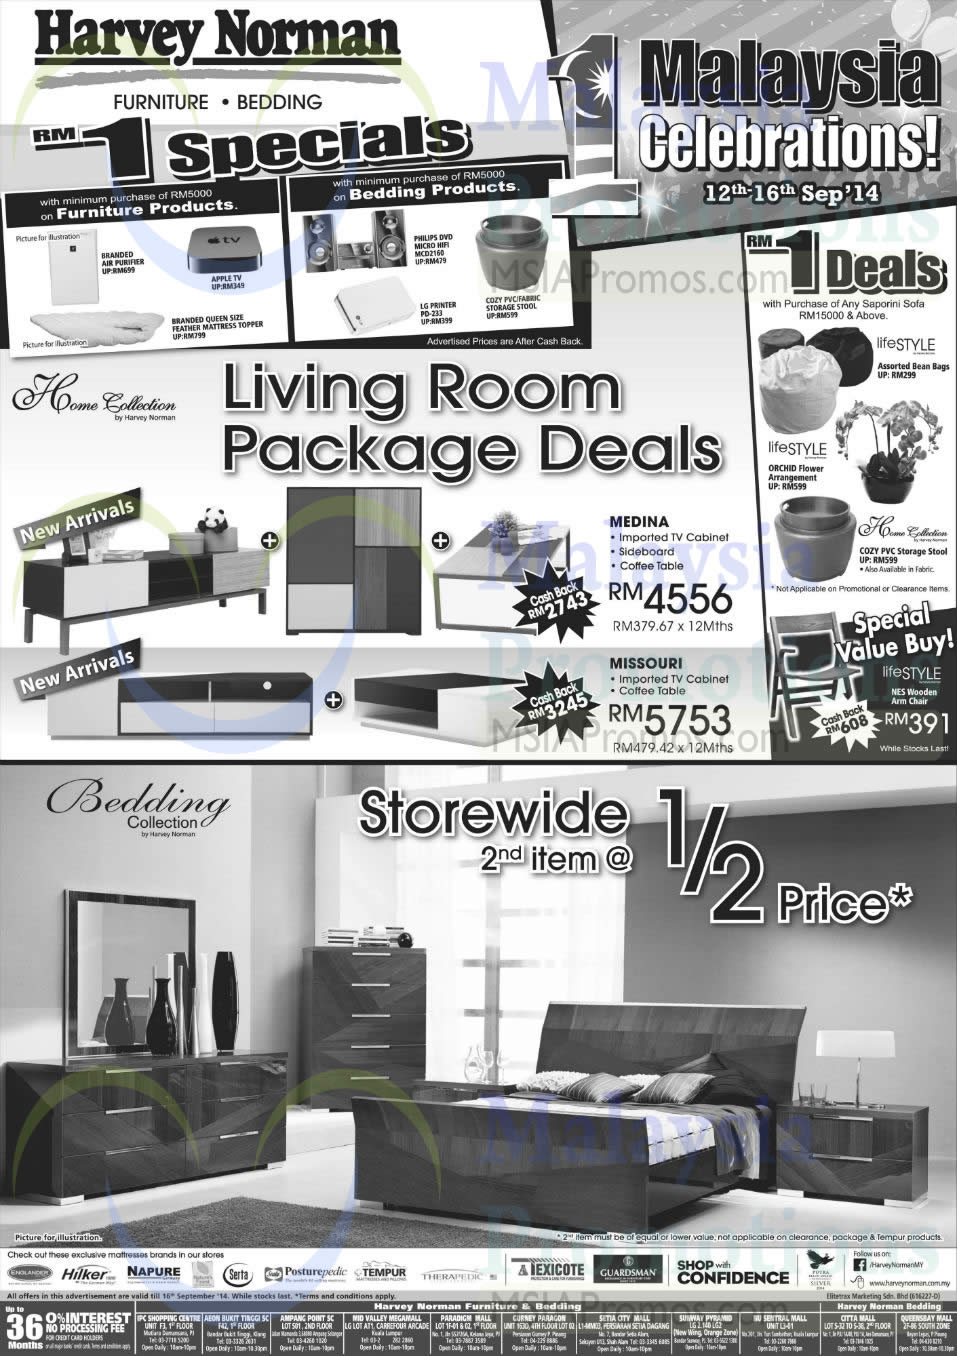 Furniture Living Room Package Deals Rm1 Deals Harvey Norman Digital Cameras Furniture